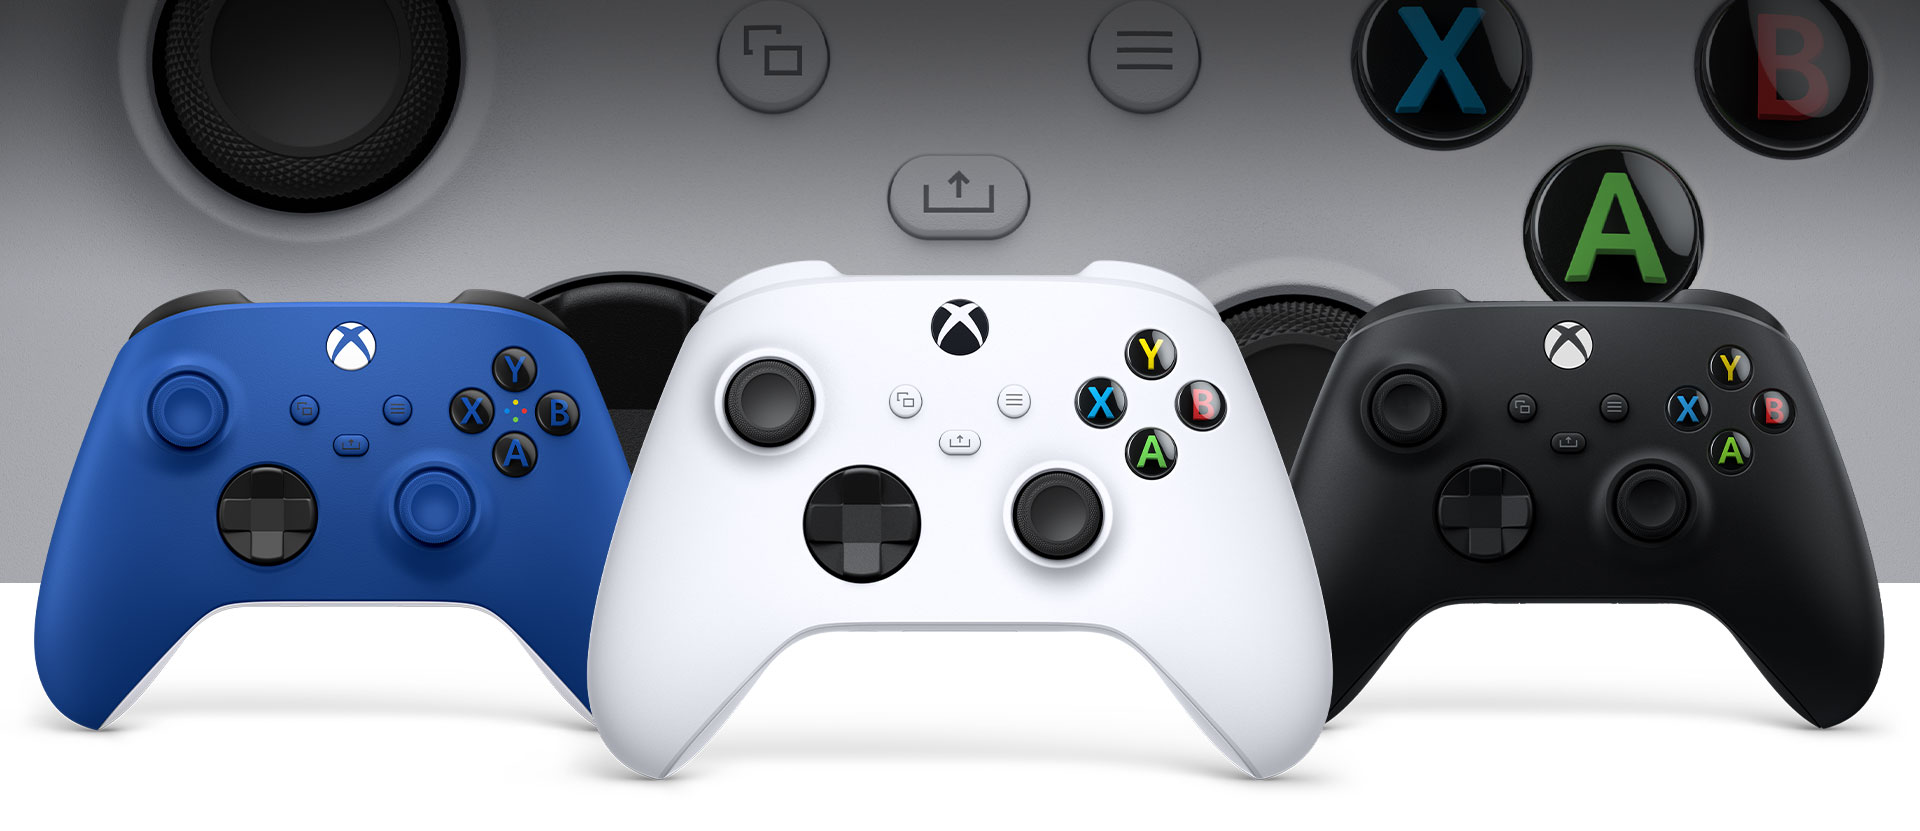 Xbox Robot controller in front with the Carbon xbox and shock blue controllers beside it